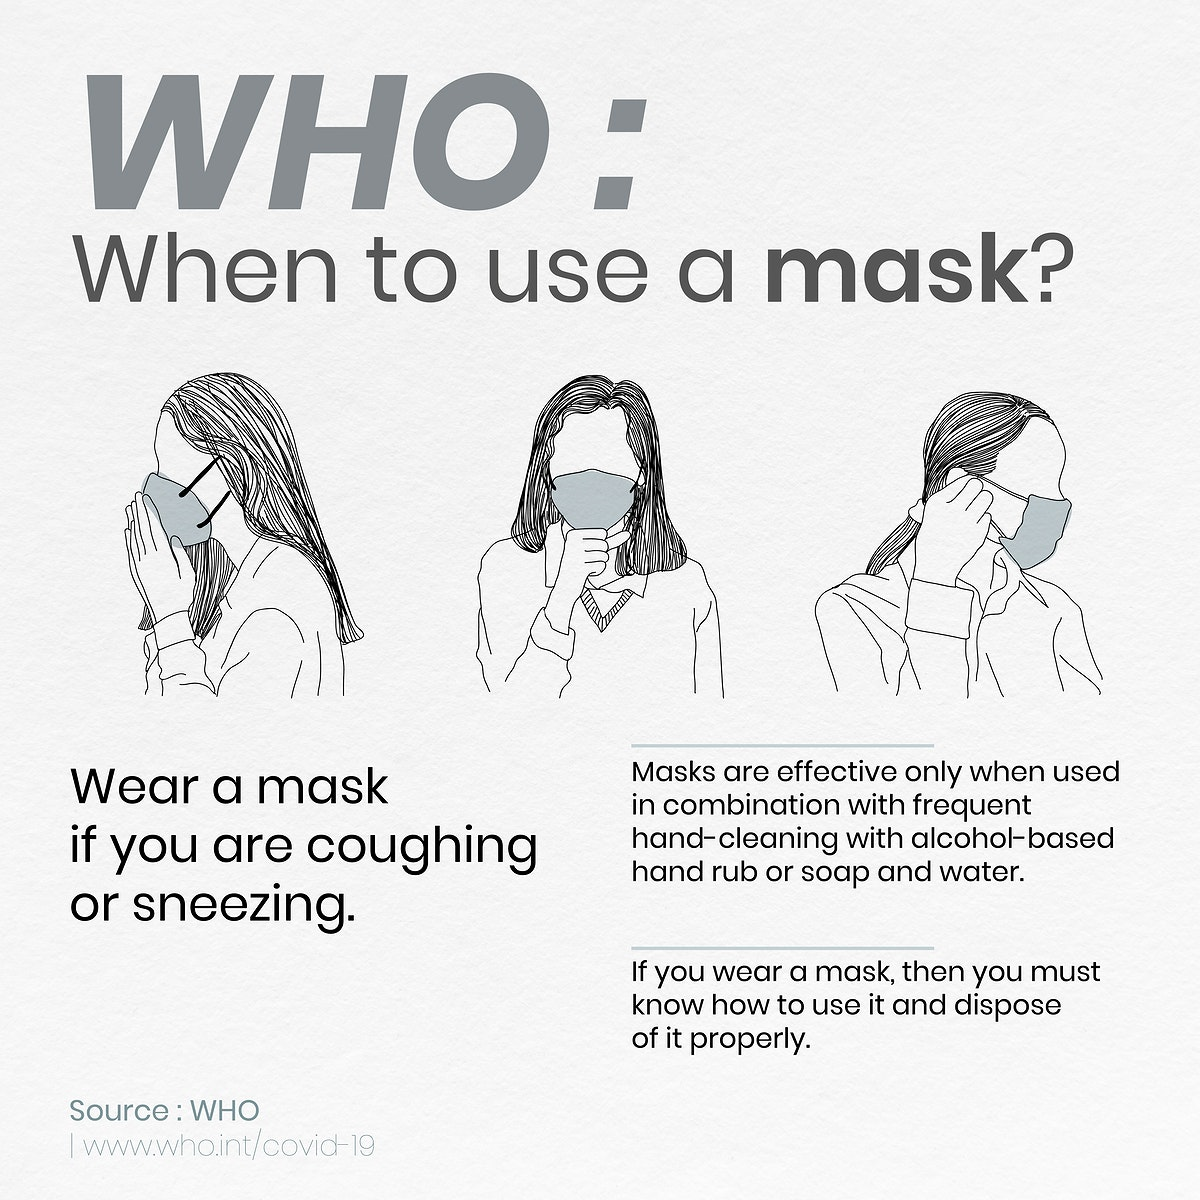 When to use a mask to prevent the coronavirus social template source WHO vector